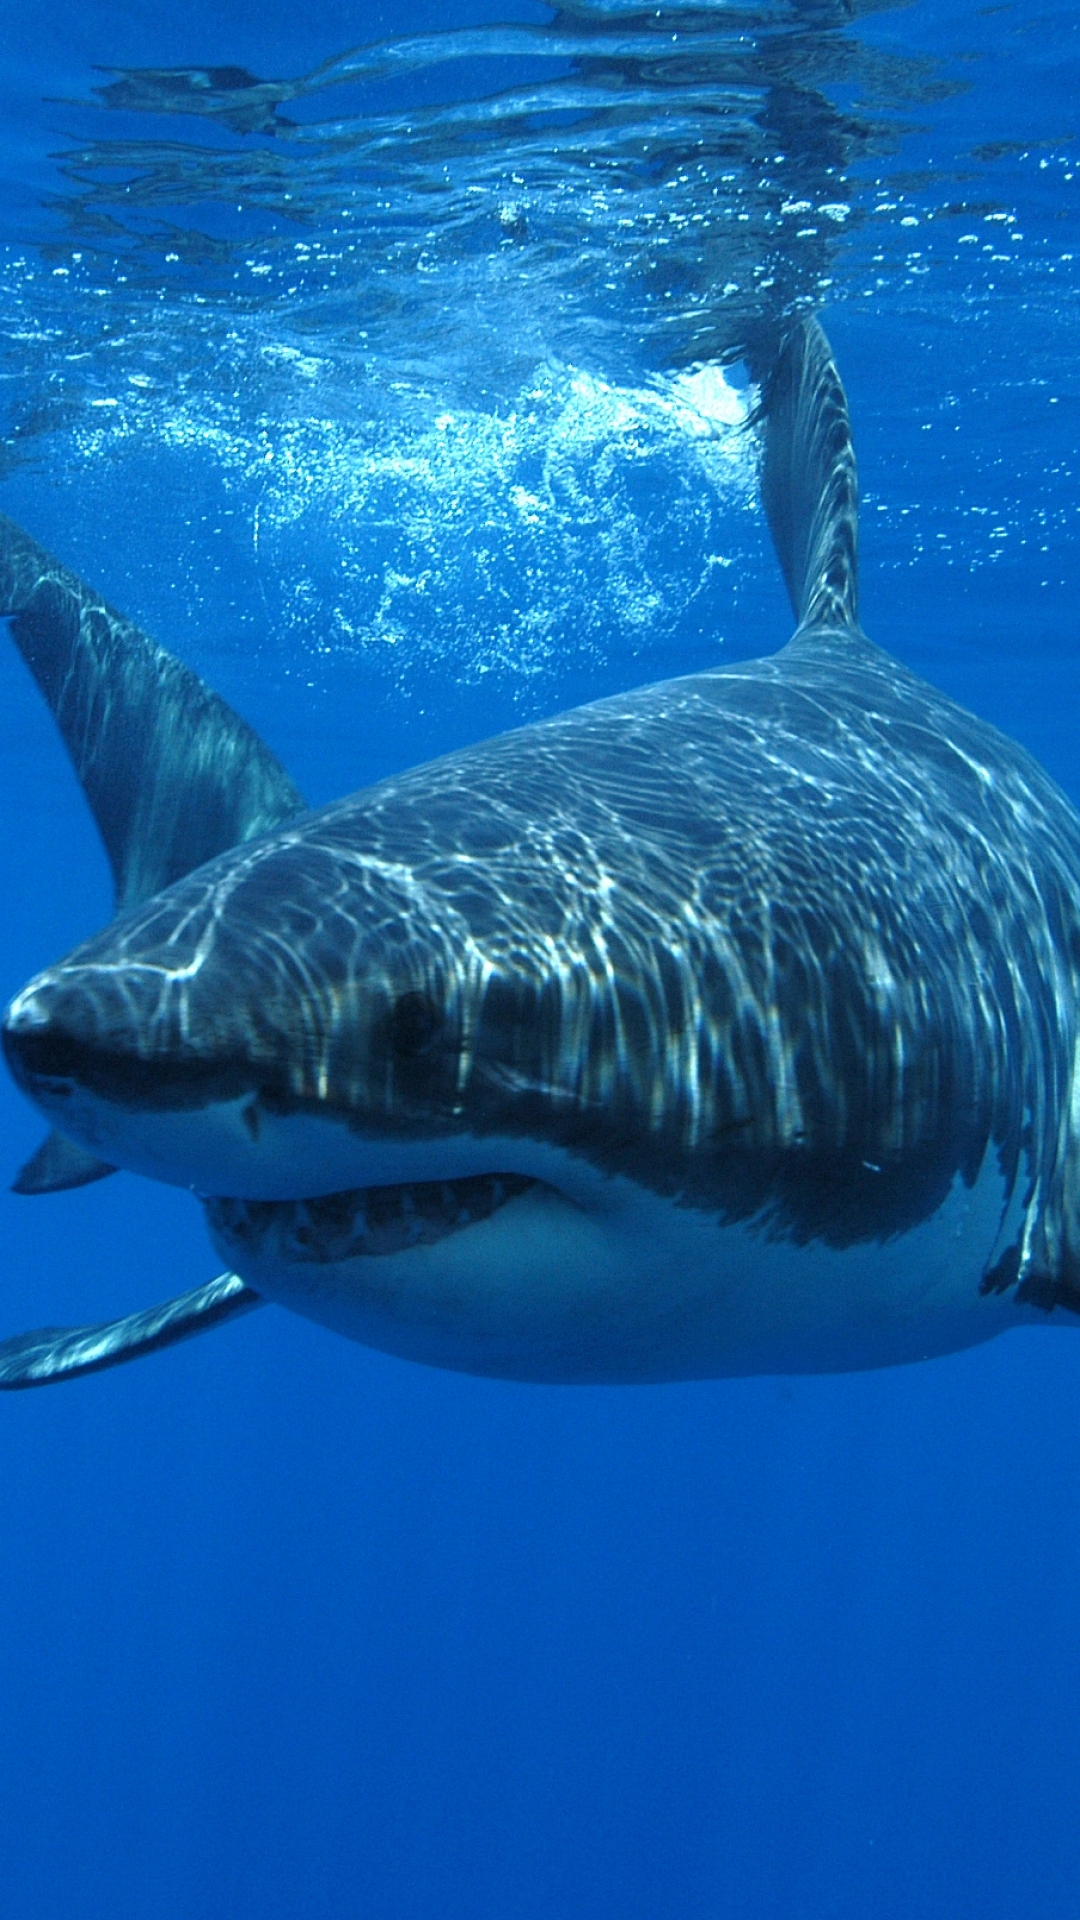 Download-this-iPhone-Plus-Animal-Great-White-Shark-1080x1920-for-all-your-Phones-and-wallpaper-wp3404917